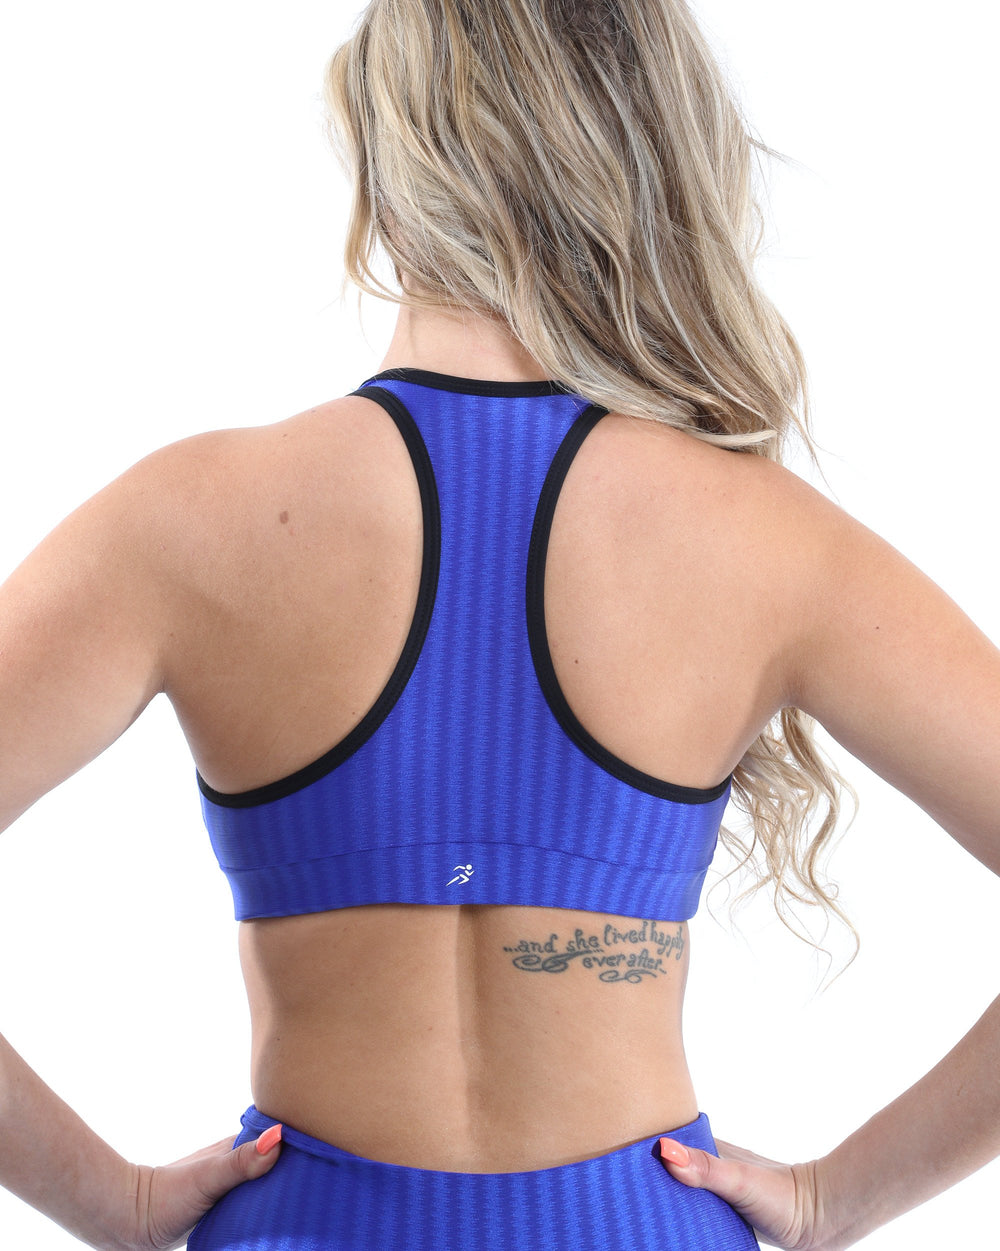 Firenze Activewear Set - Leggings & Sports Bra - Blue [MADE IN ITALY]